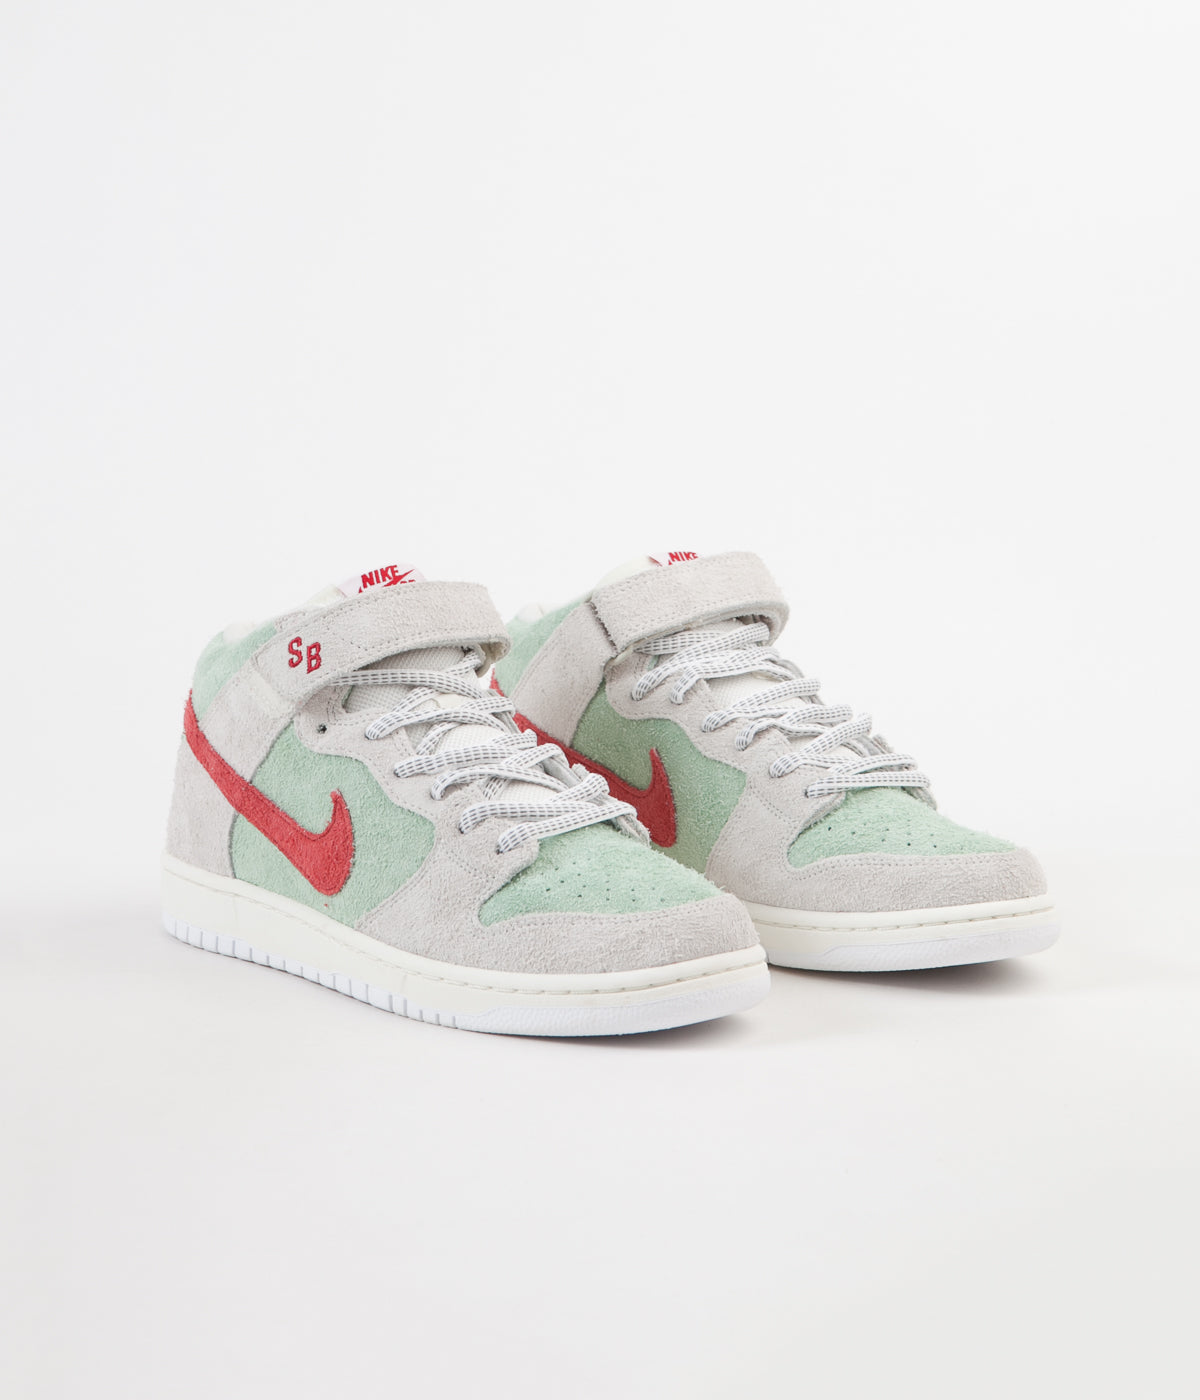 watch 5f62e a0d70 ... Nike SB Dunk Mid Pro  White Widow  Shoes - Sail   Gym Red ...